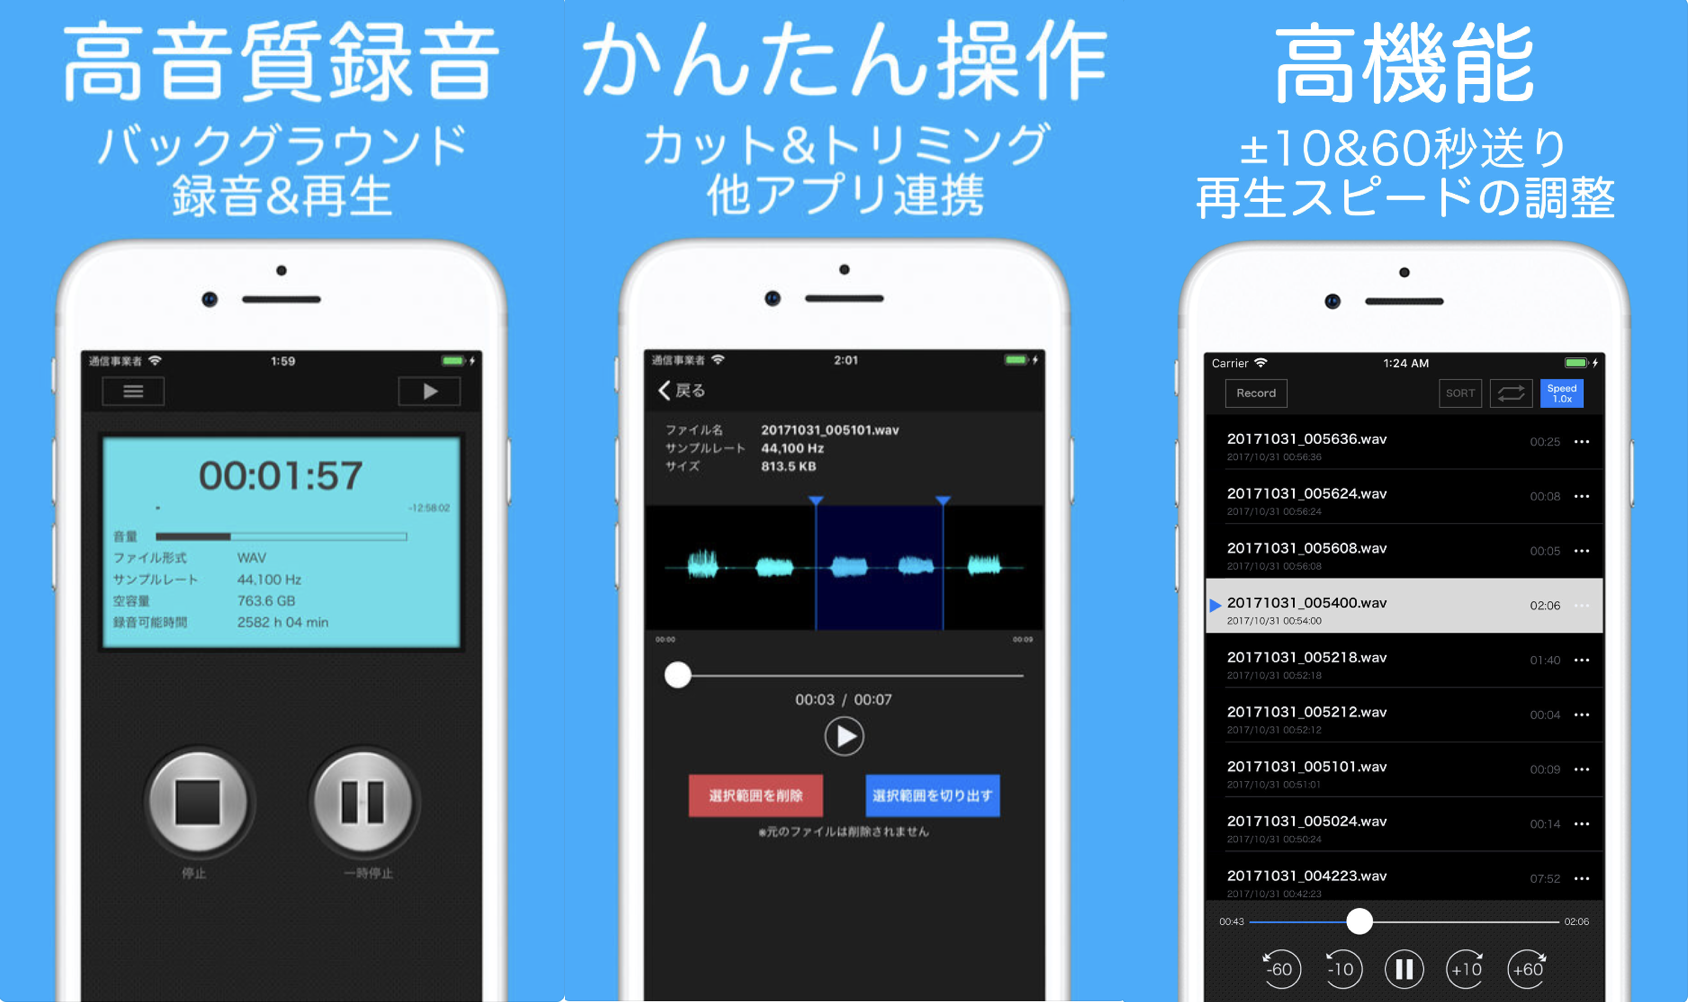 【iPhone&Android】録音アプリ「PCM録音」を試してみた|2018年12月Youtube収録用